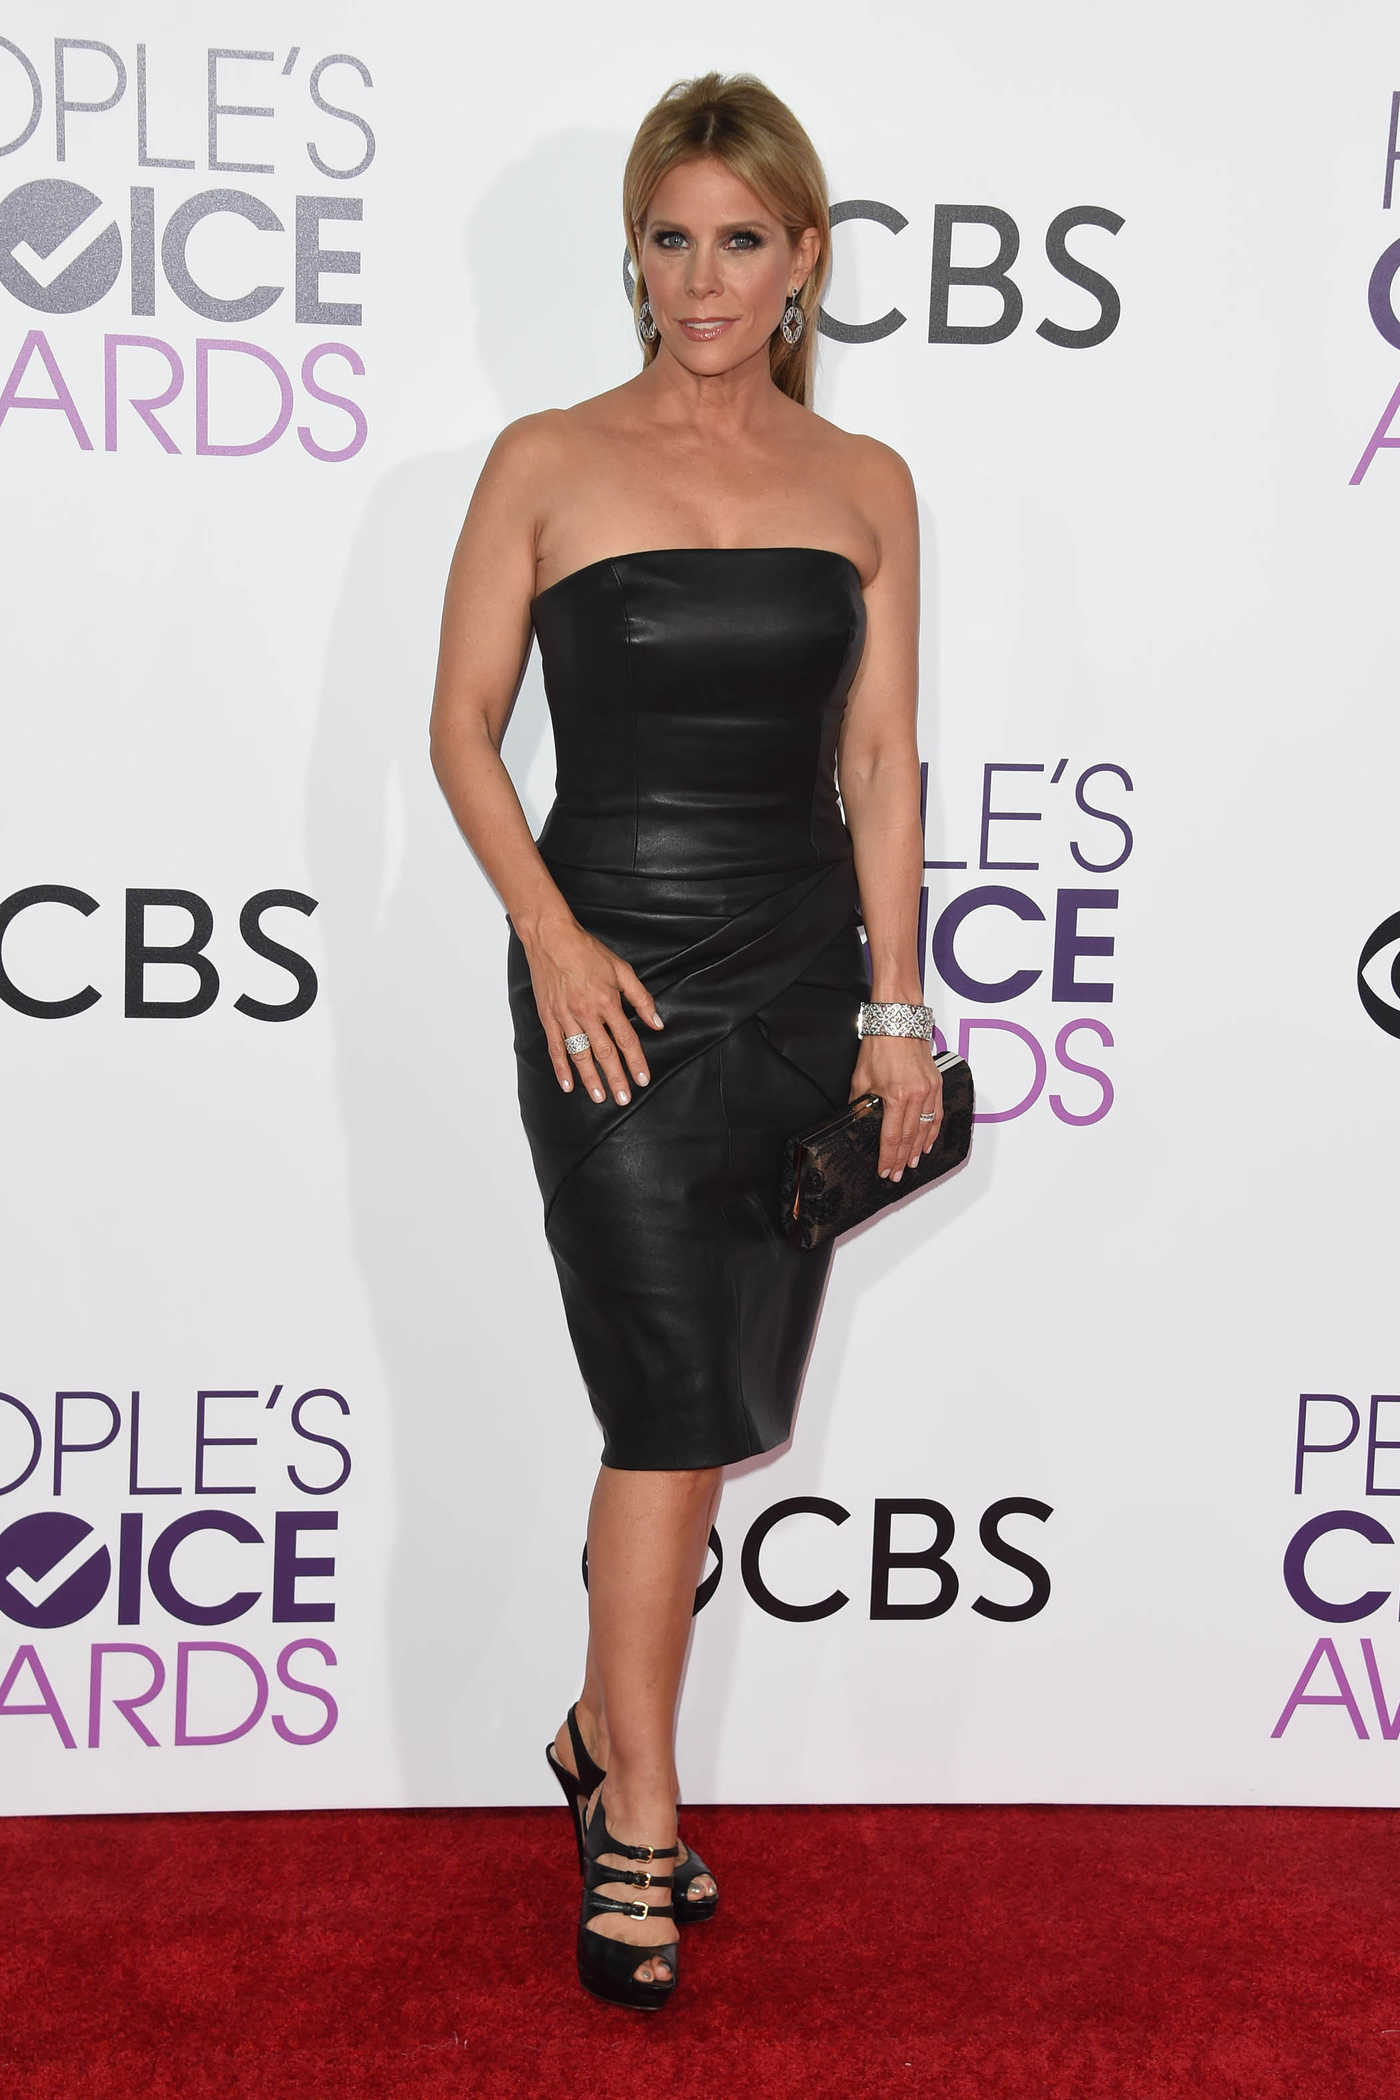 Cheryl Hines at the 43rd Annual People's Choice Awards in Los Angeles 01/18/2017